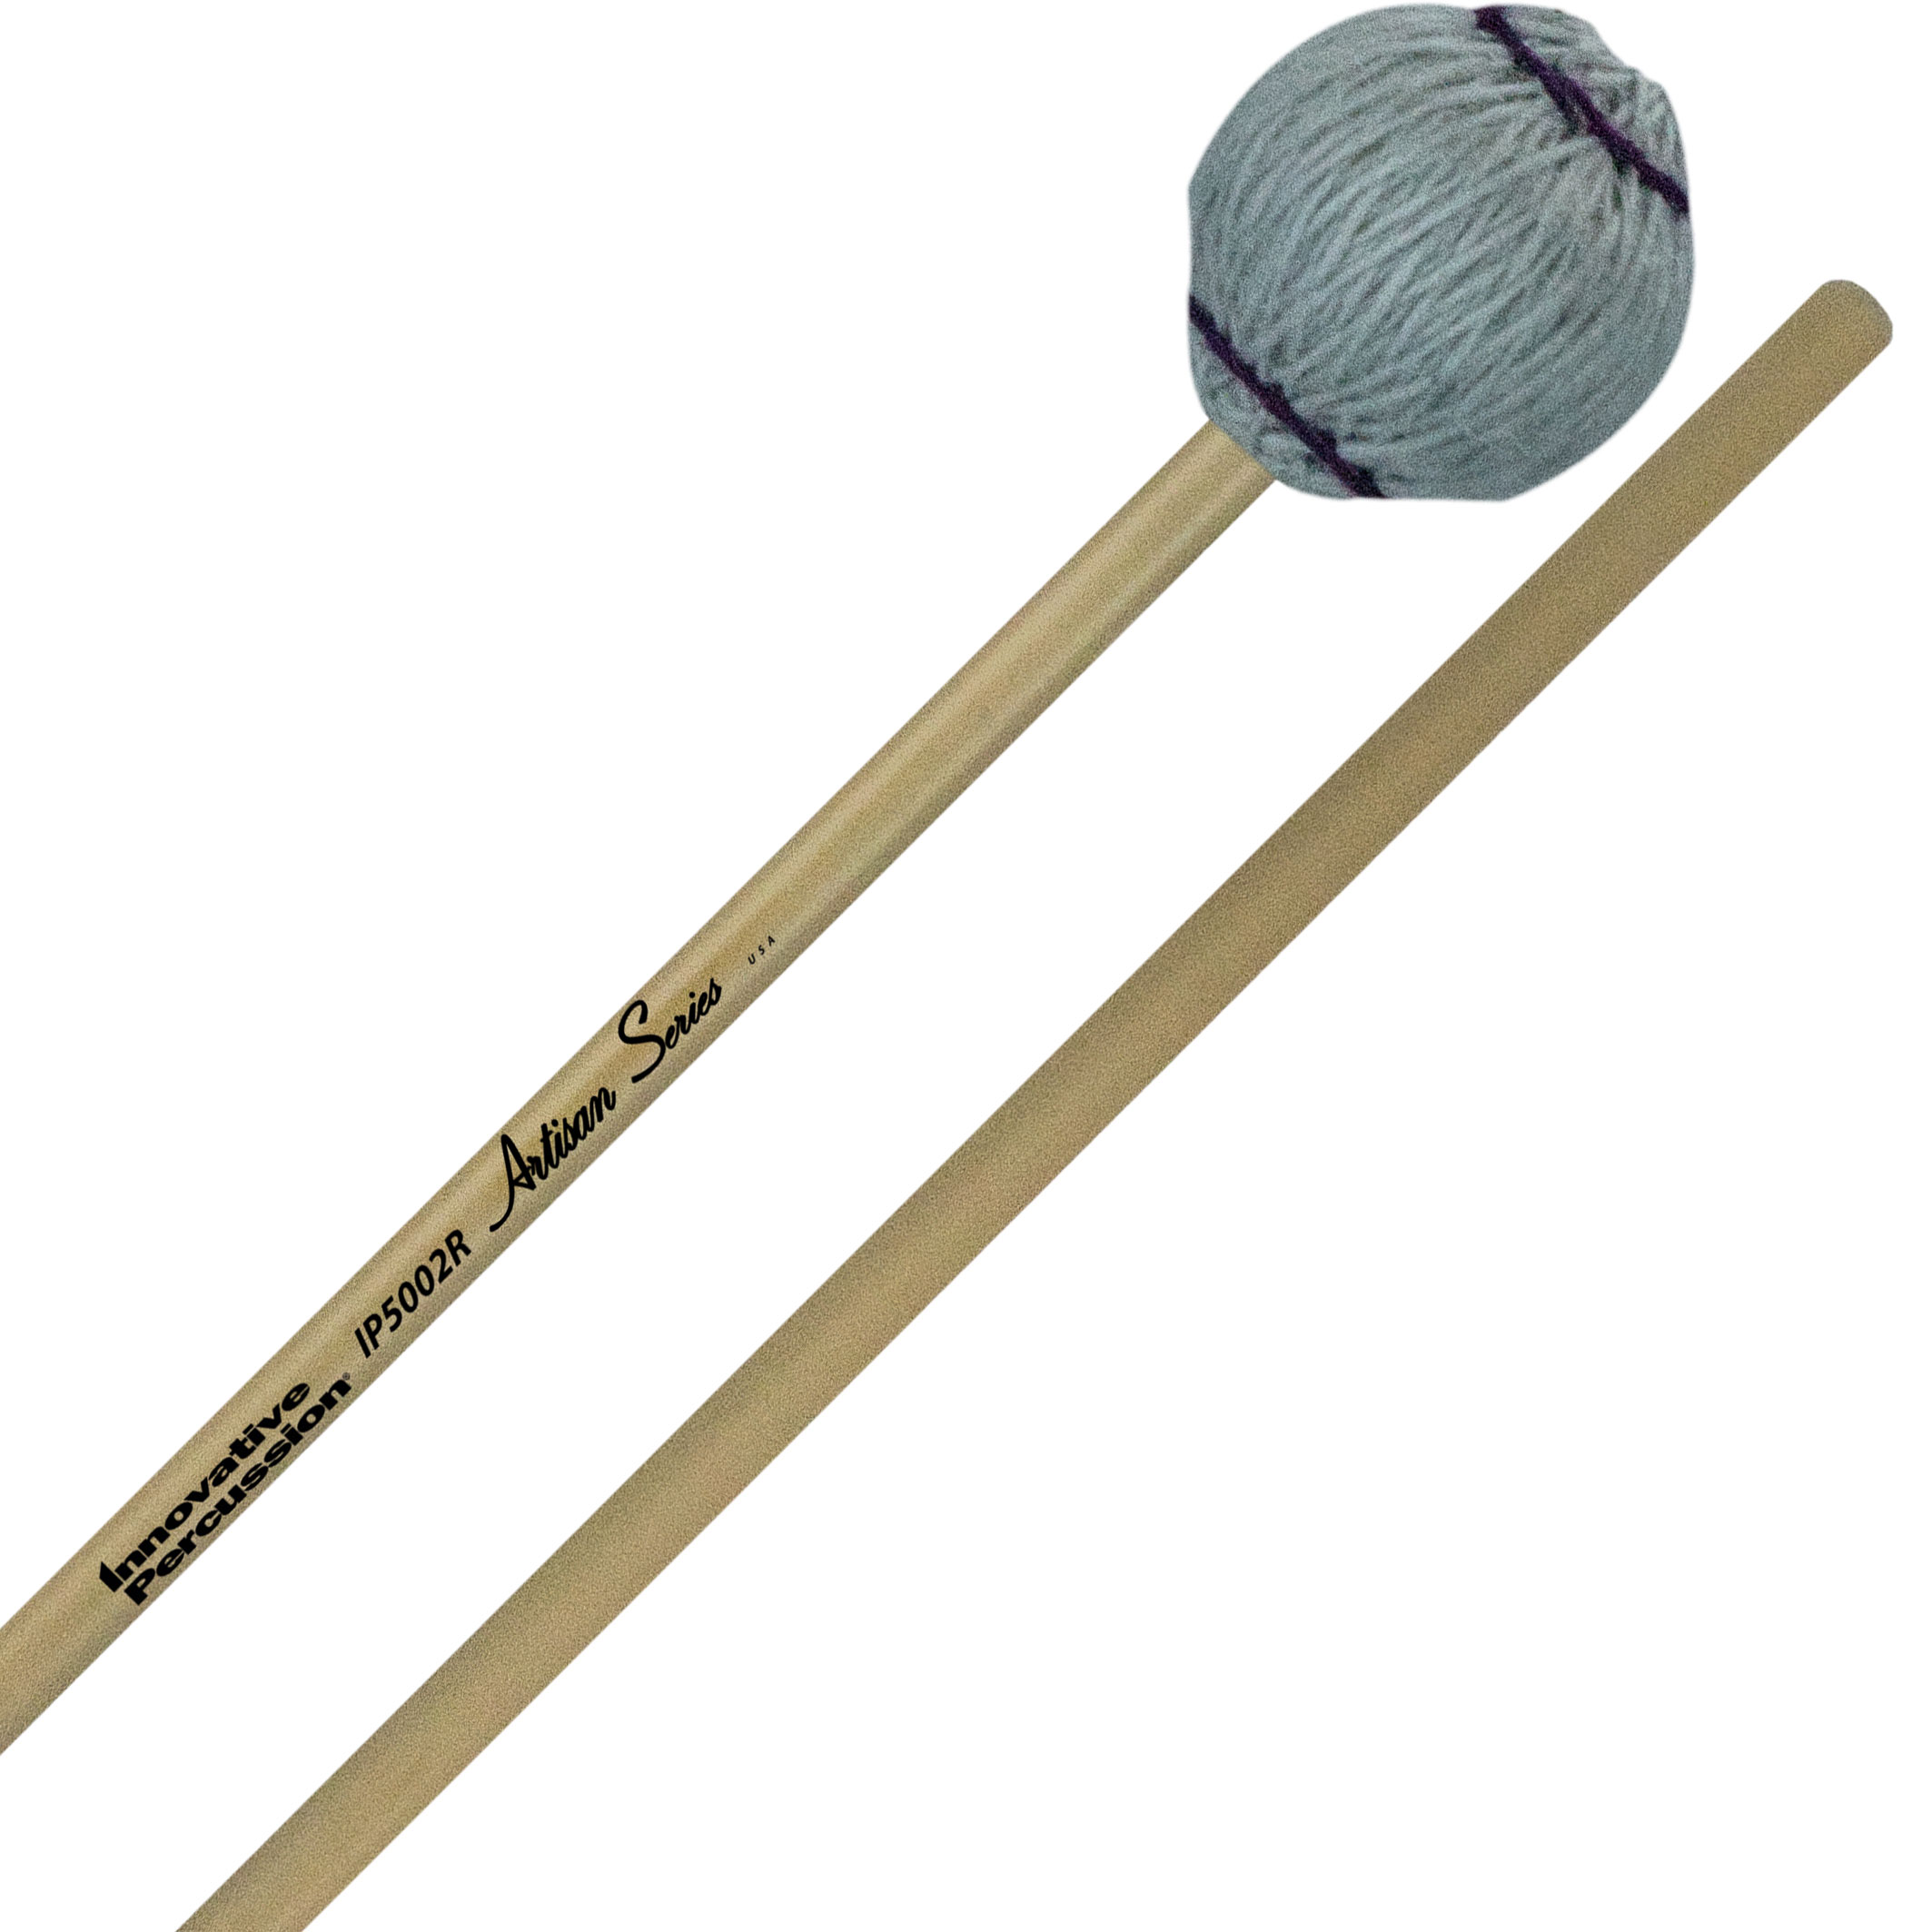 Innovative Percussion Artisan Series Medium Soft Marimba Mallets with Rattan Handles